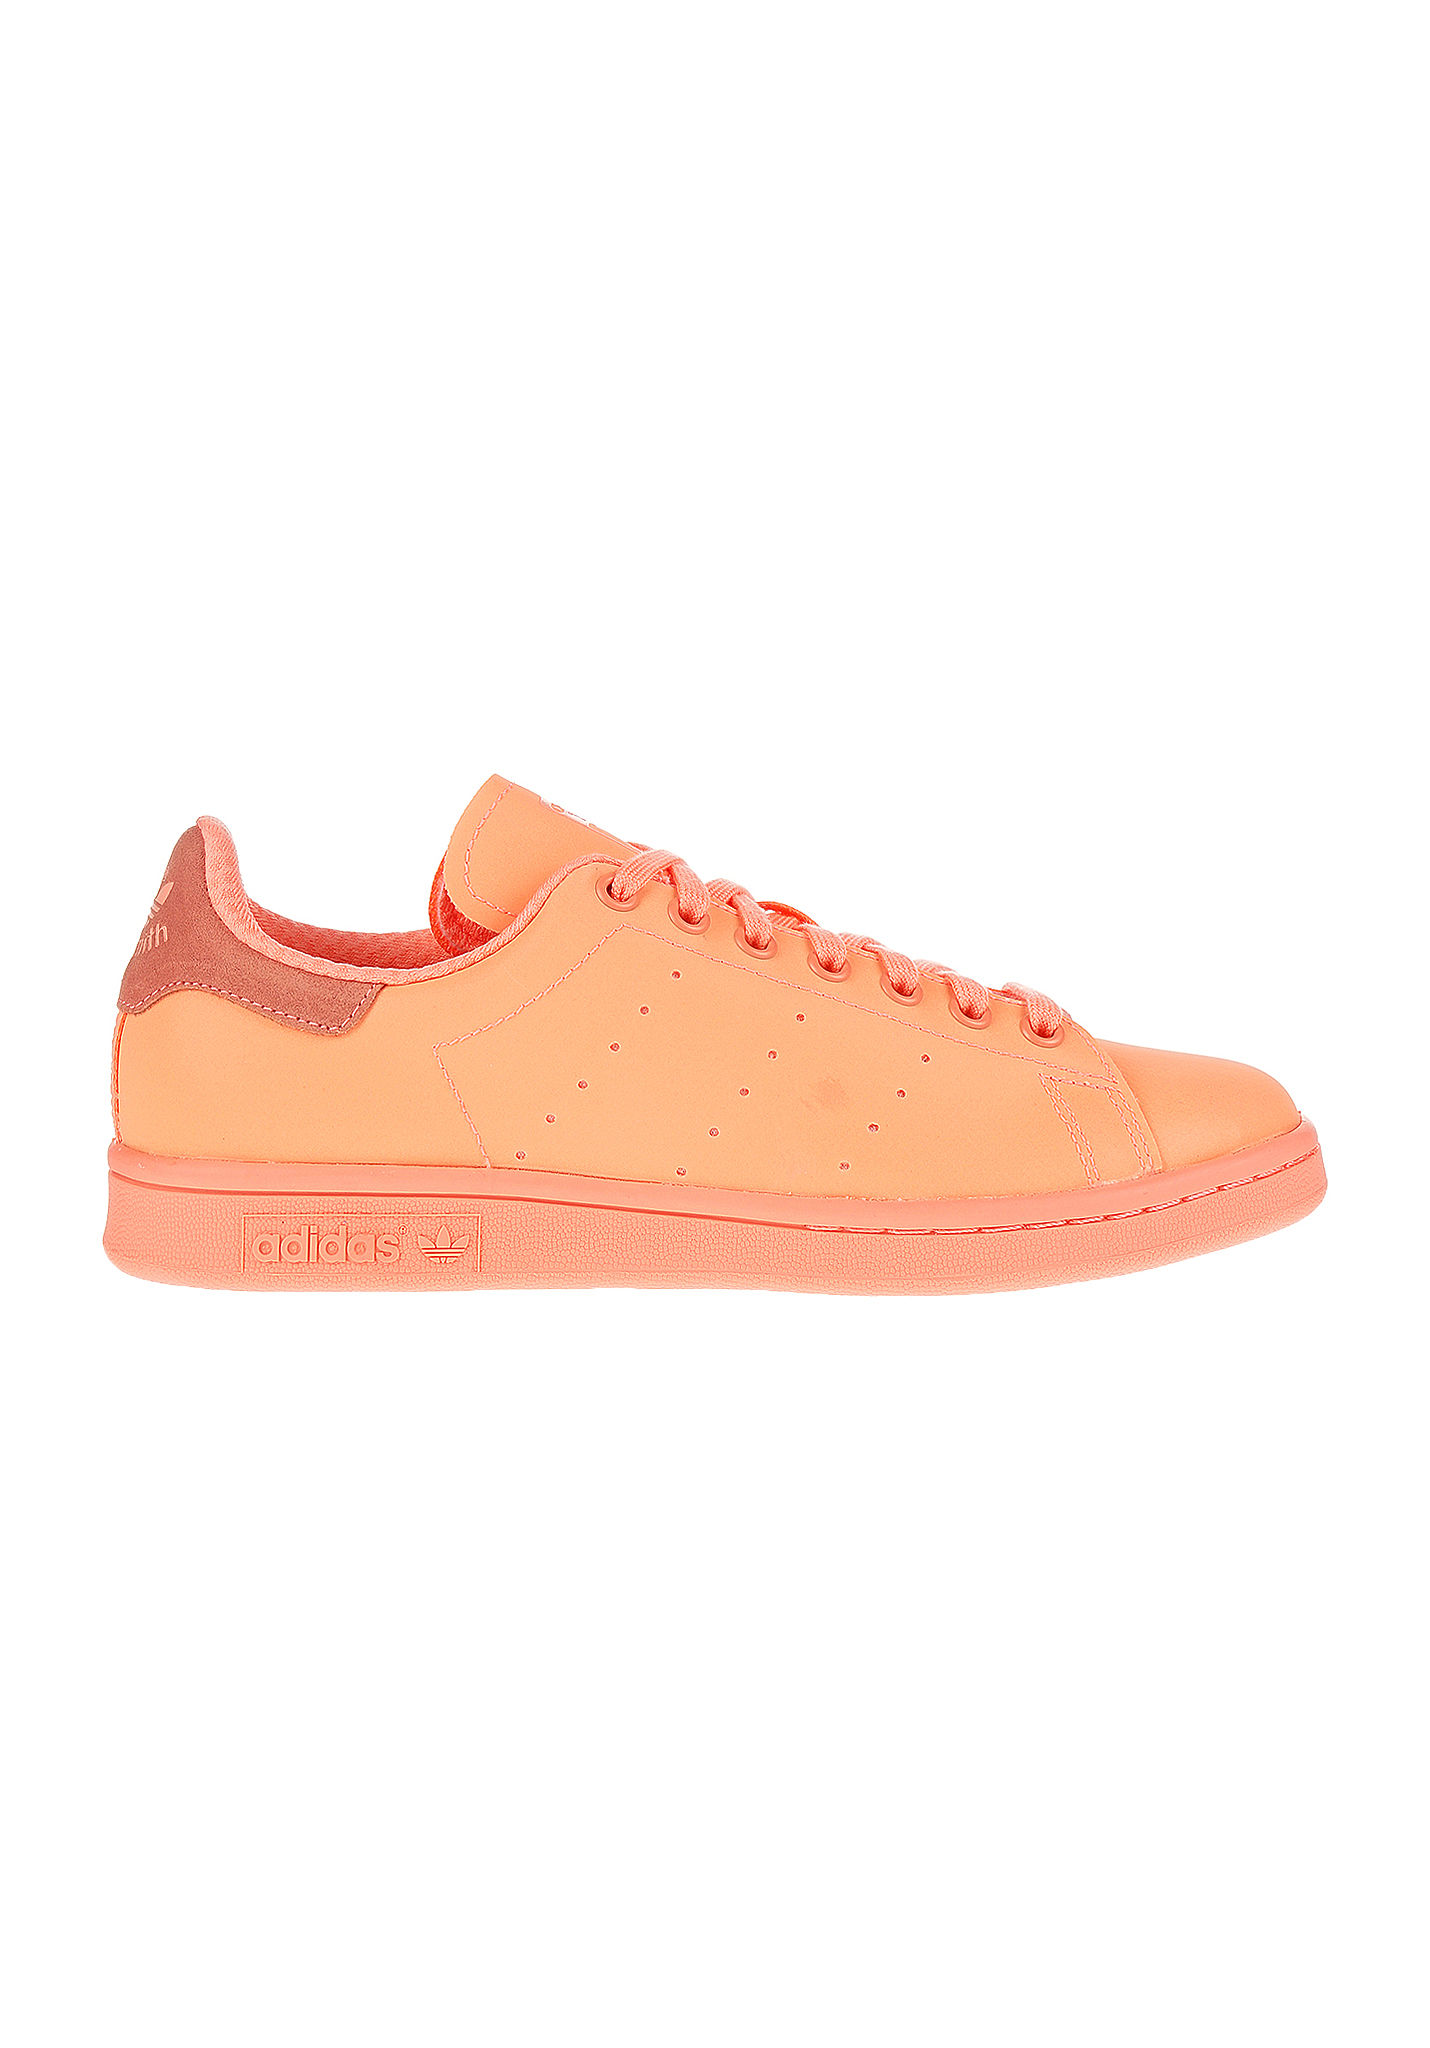 adidas stan smith orange. Black Bedroom Furniture Sets. Home Design Ideas